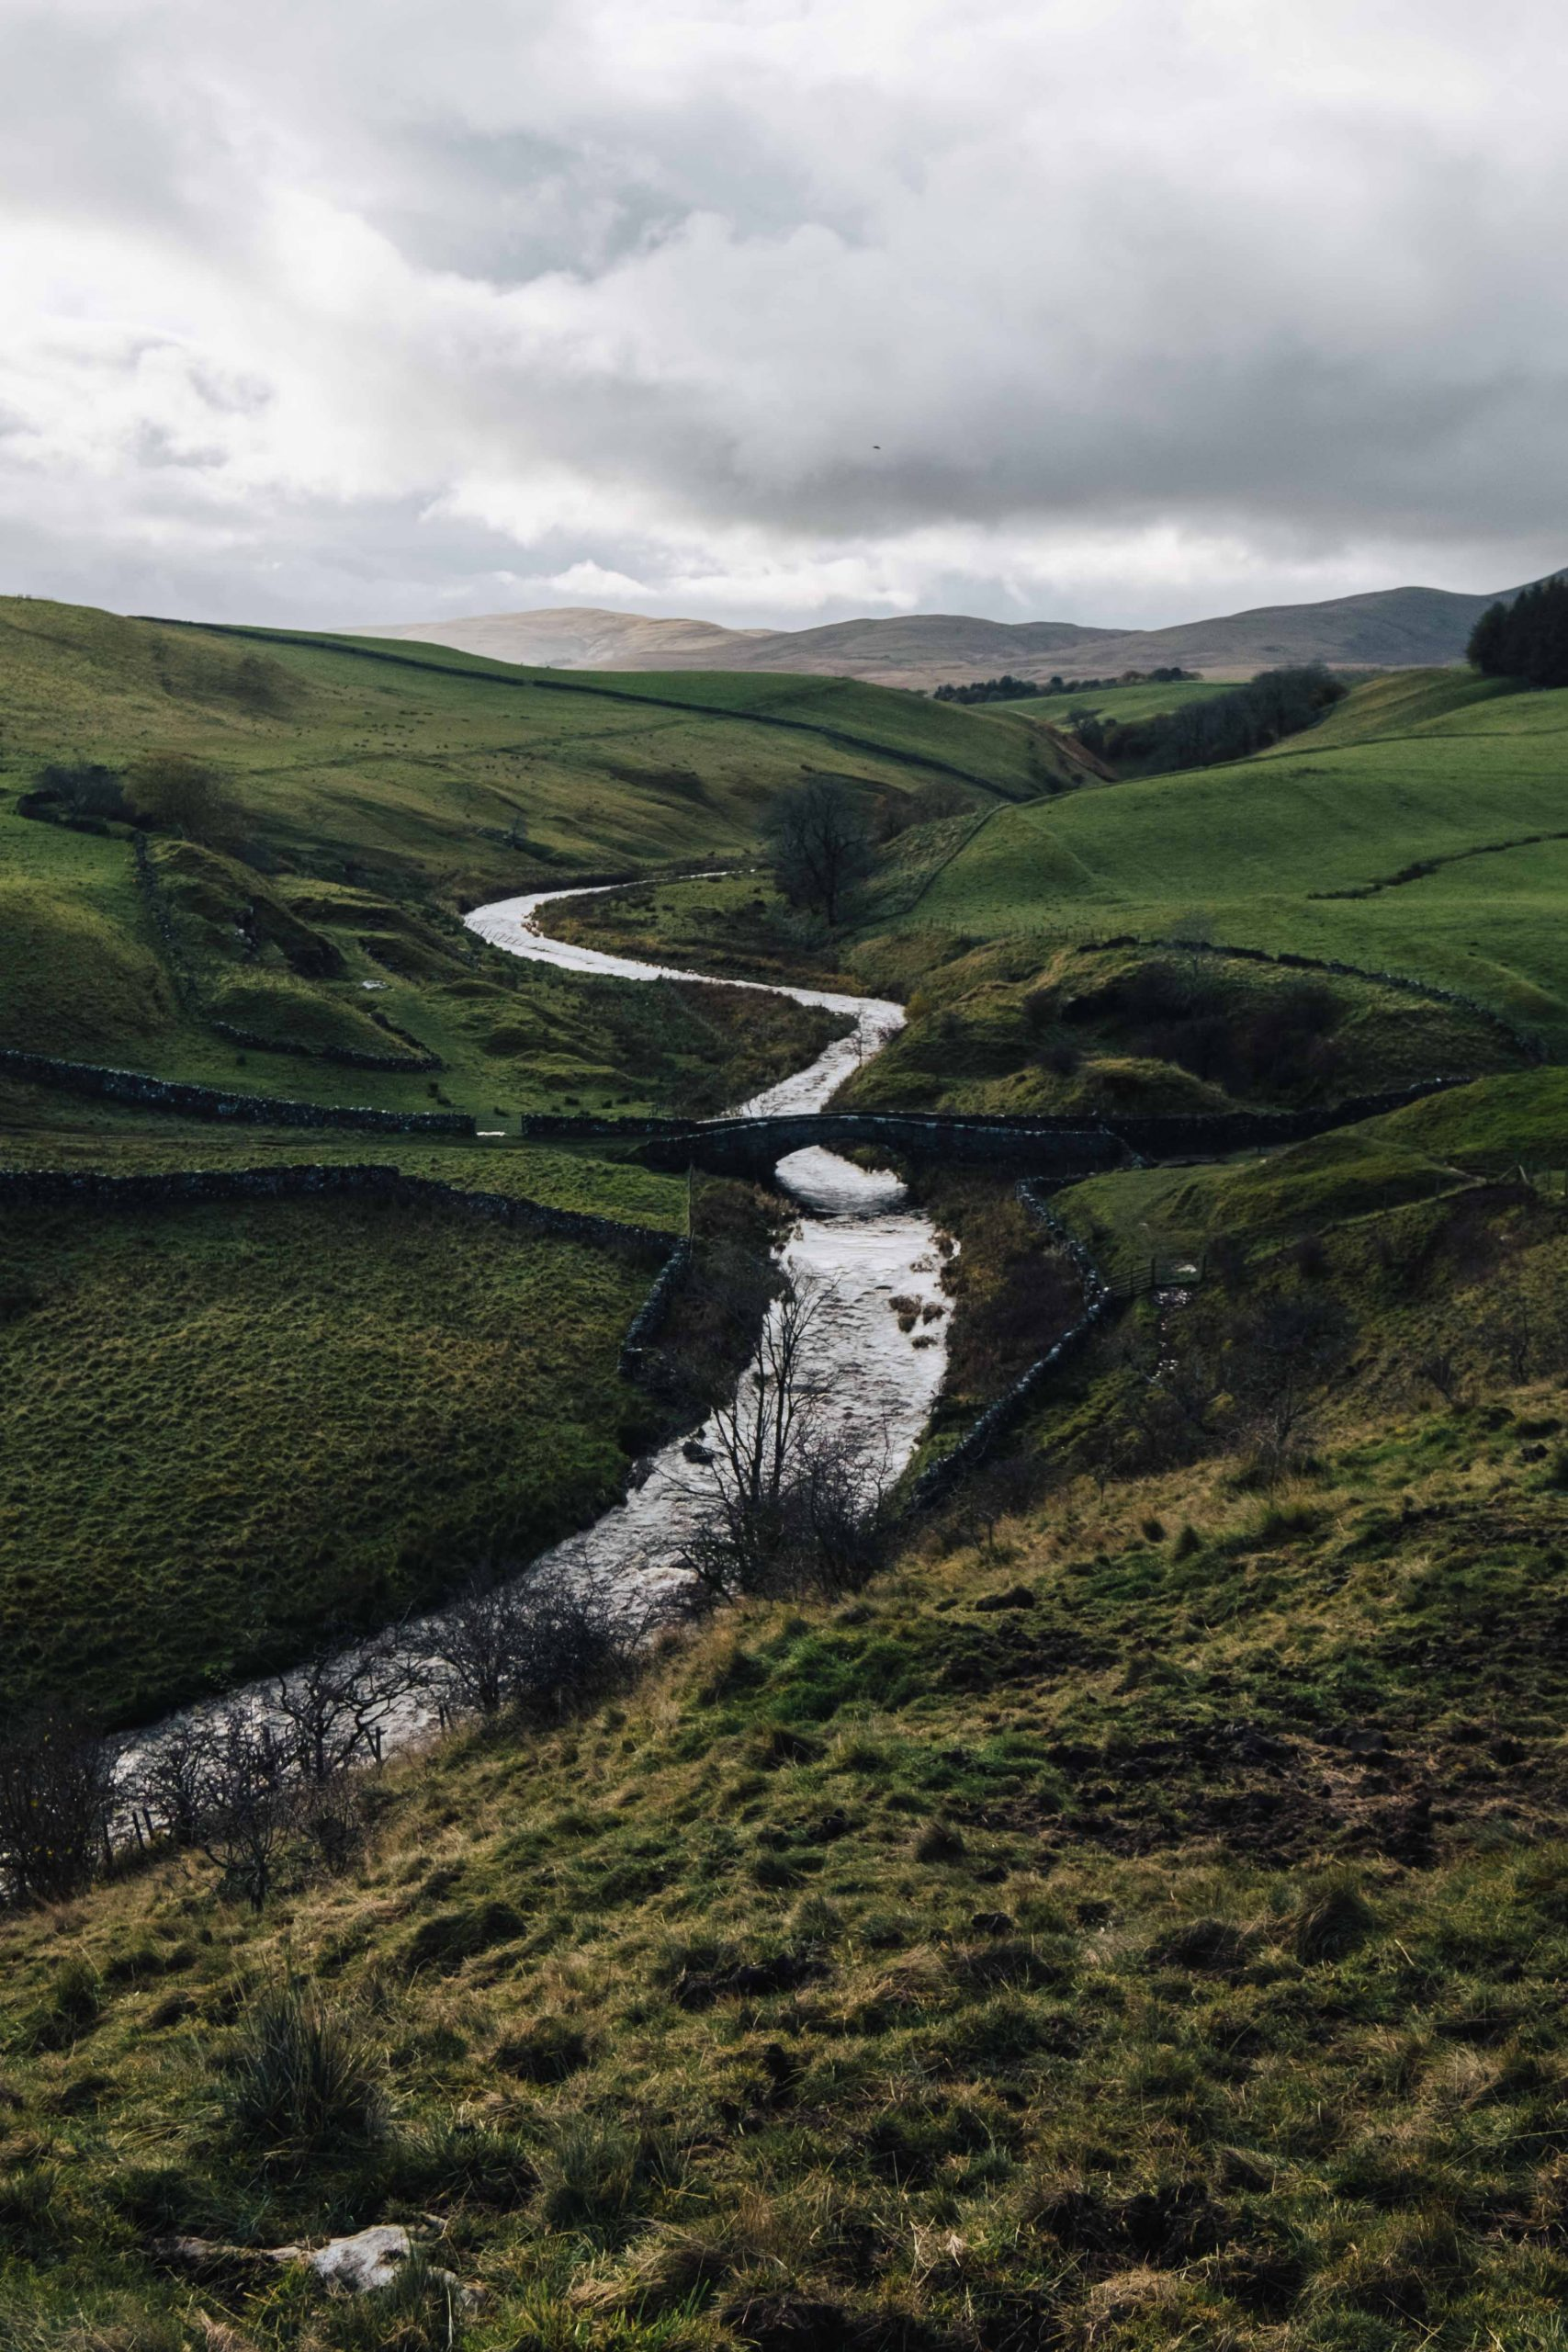 The quiet hills of Howgill Fells at the border of Cumbria and Yorkshire Dales, north west England | Mondomulia